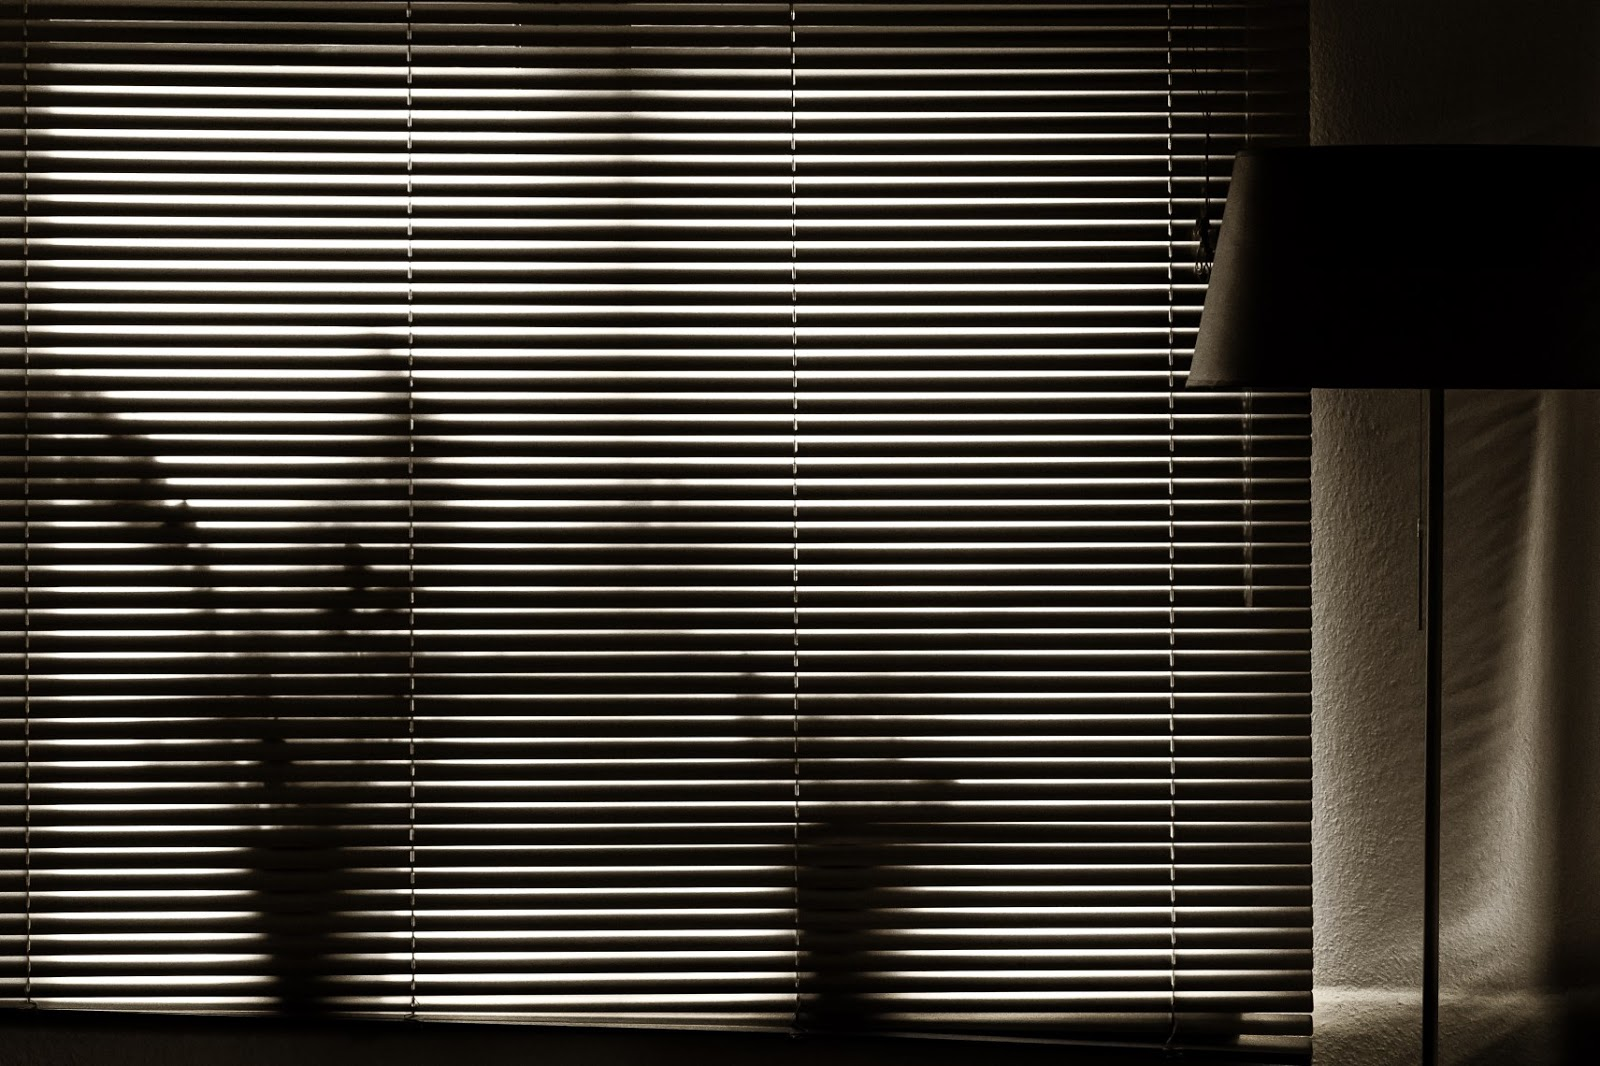 Matthew G. Beall vision driven black and white photography  Plants. Window Blind. Lamp. 2014